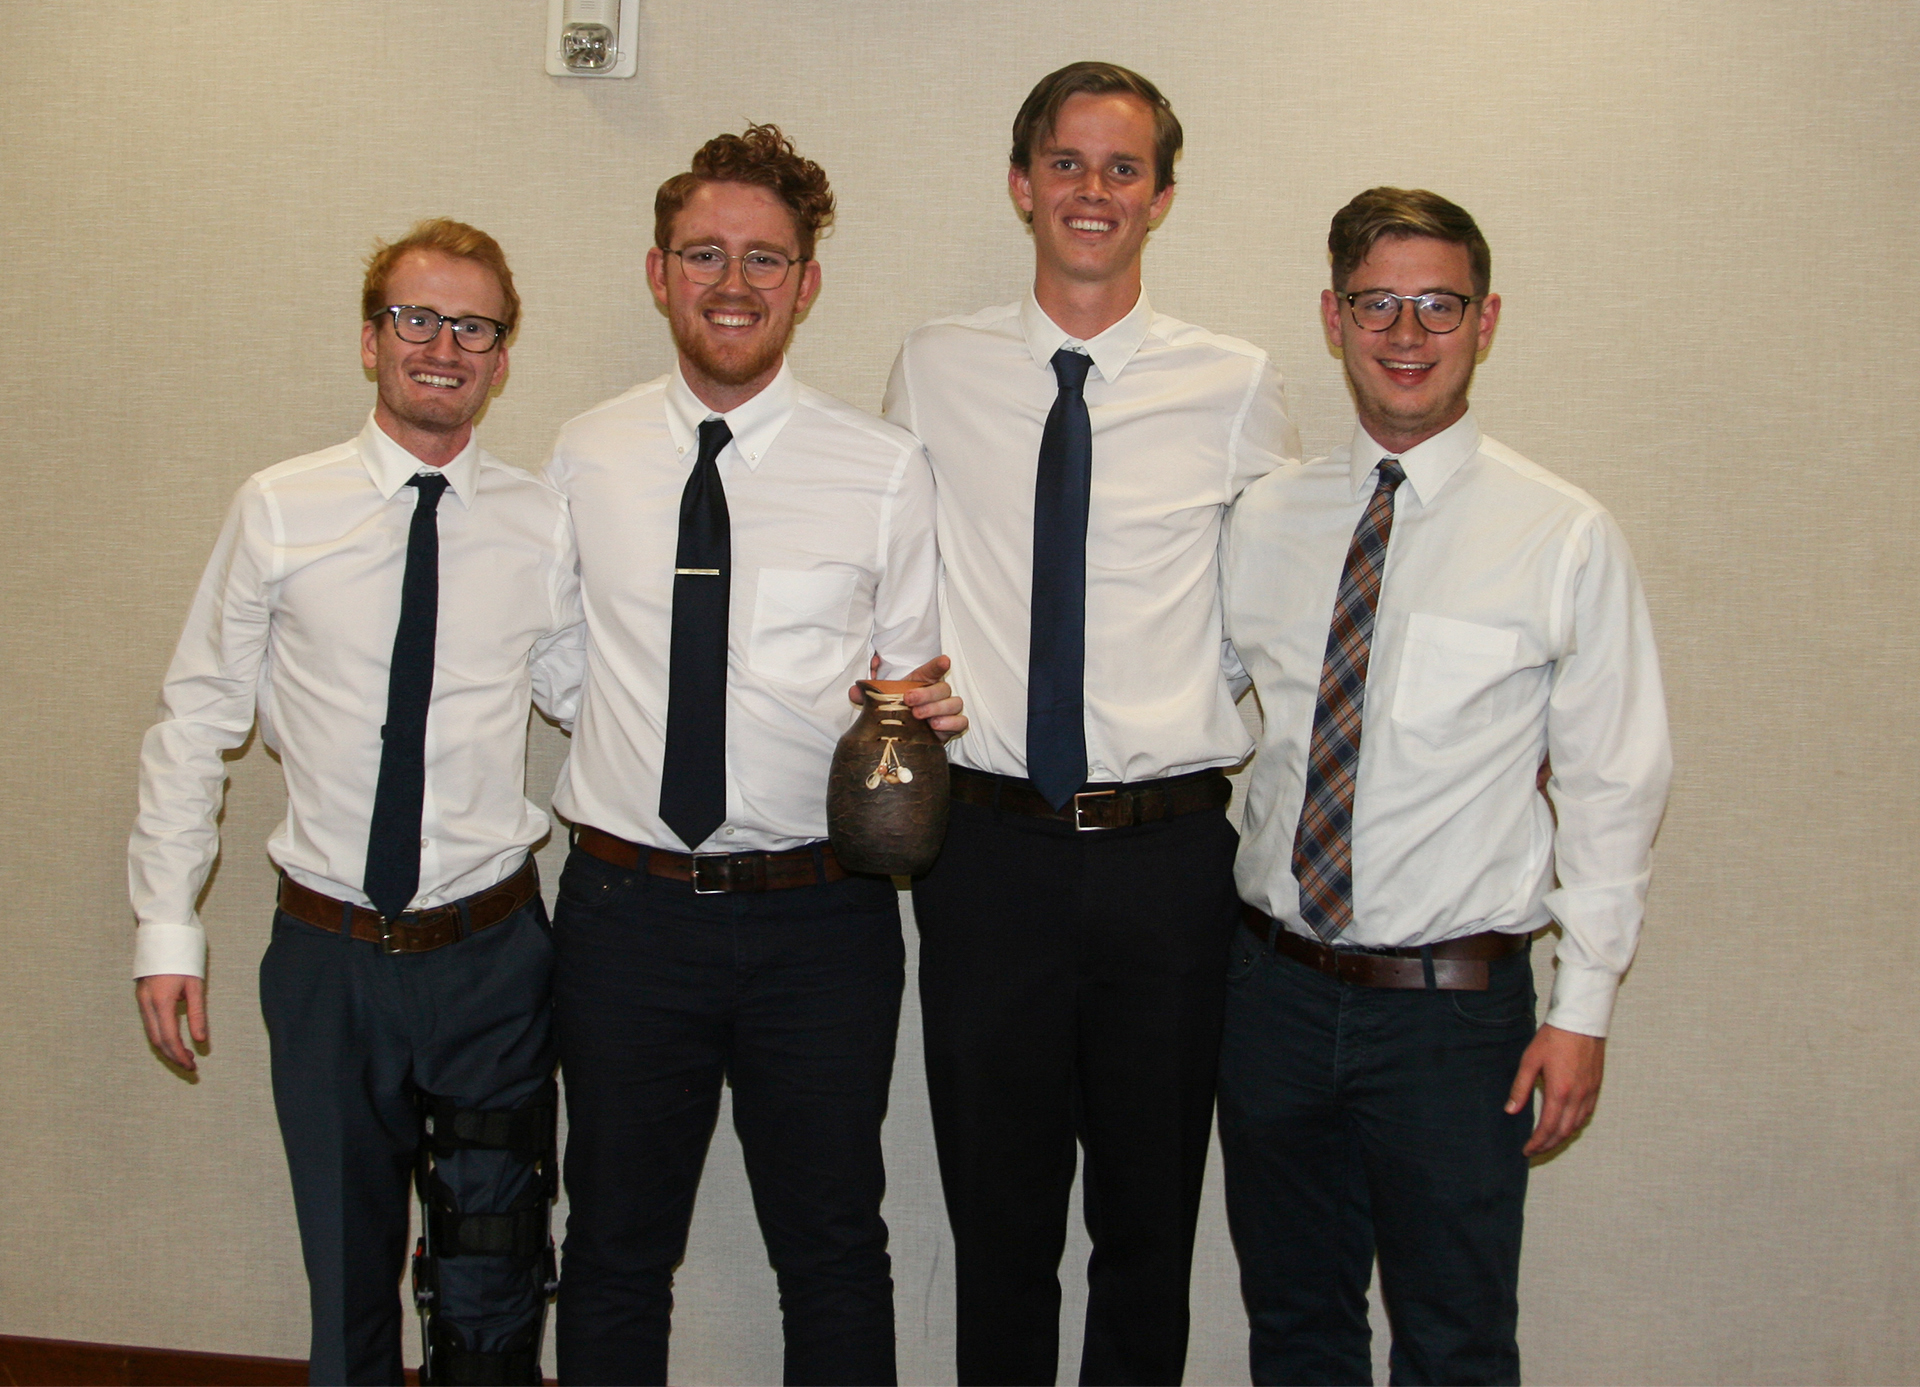 CBU student entrepreneurs pitch their start-ups at inaugural competition